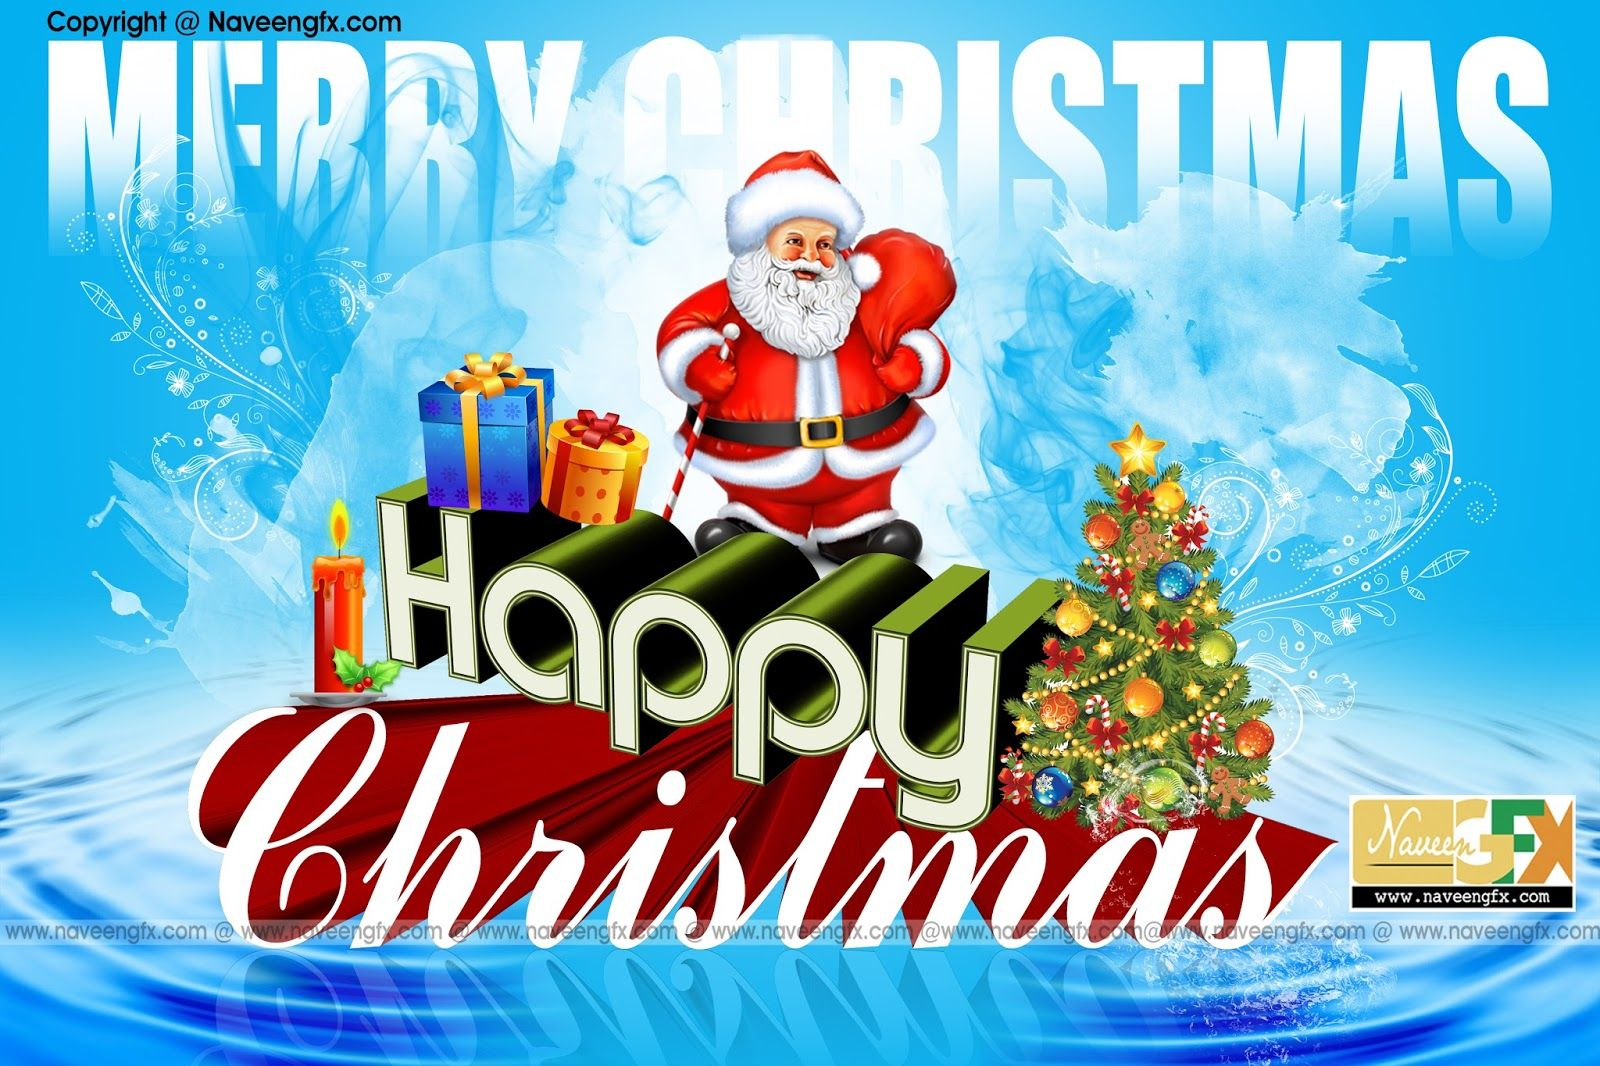 Christmas images and pictures psd filespersonalized christmas cards christmas images and pictures psd filespersonalized christmas cards psd fileschristmas psd cards personalized christmas cardsfree downloadstemplates m4hsunfo